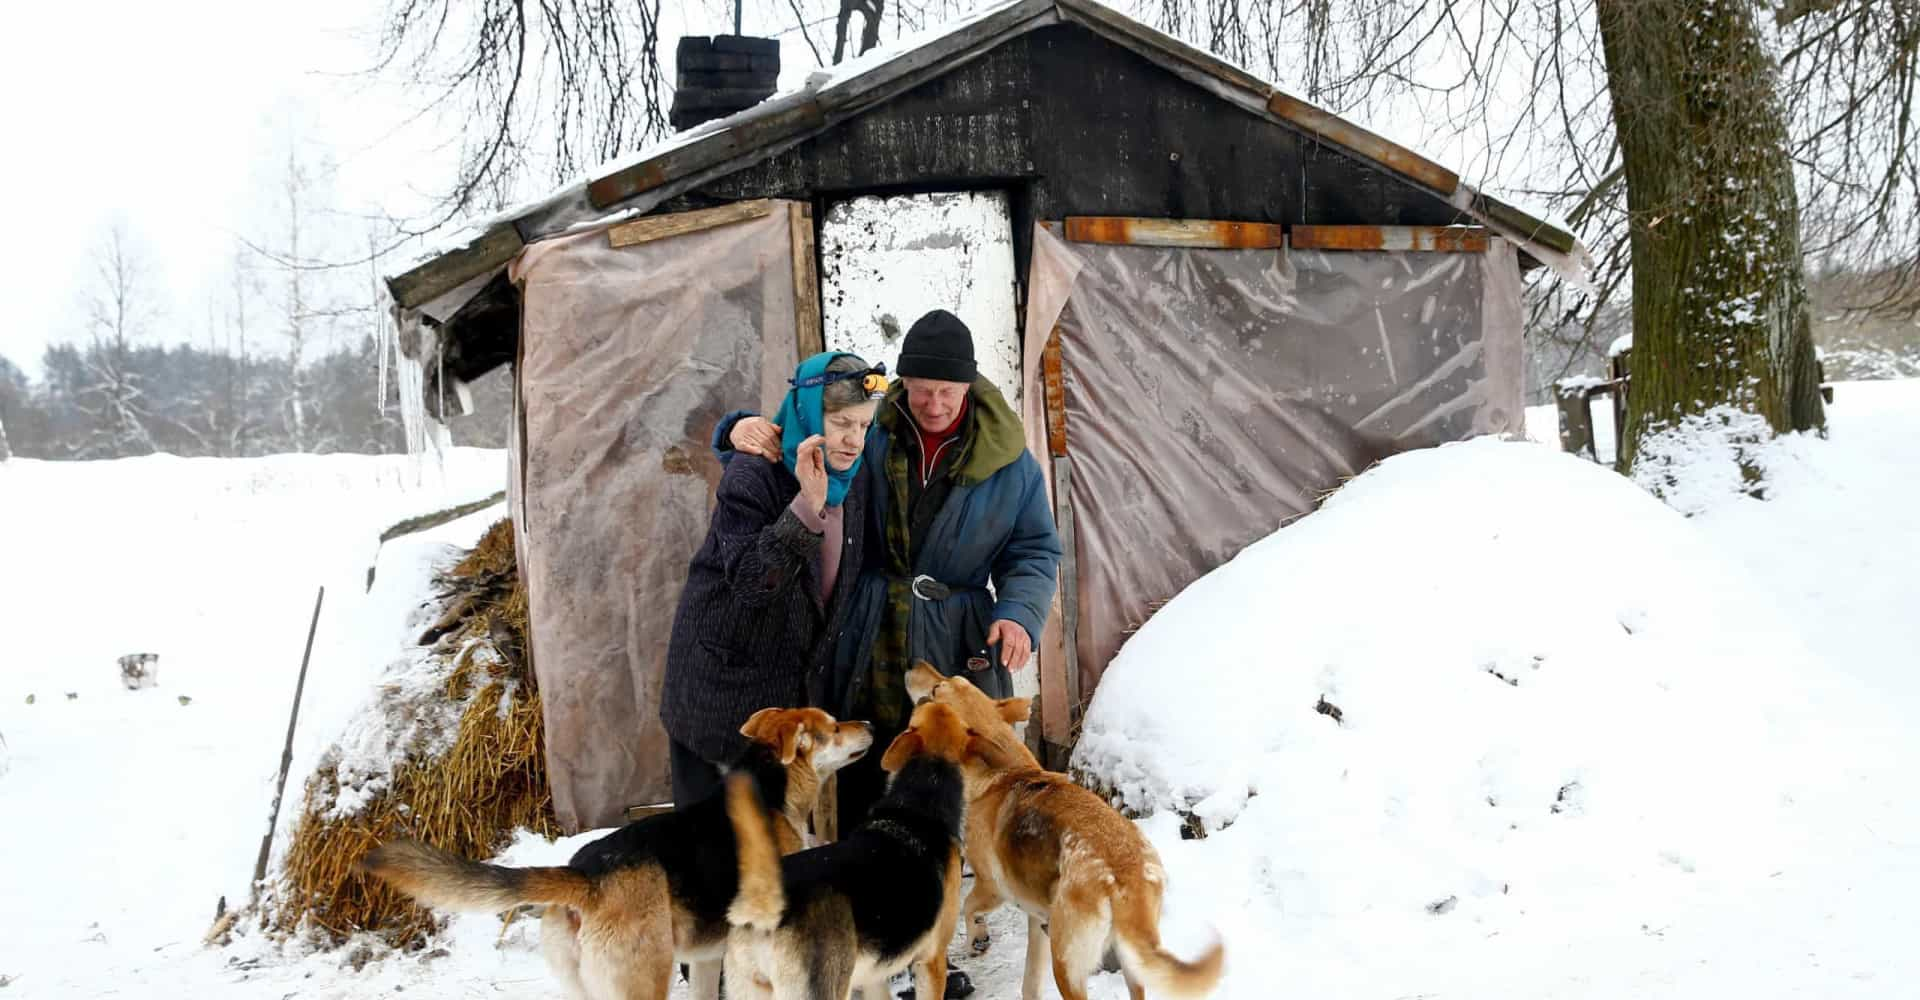 Solitude is bliss: Meet the forest dwellers of Belarus